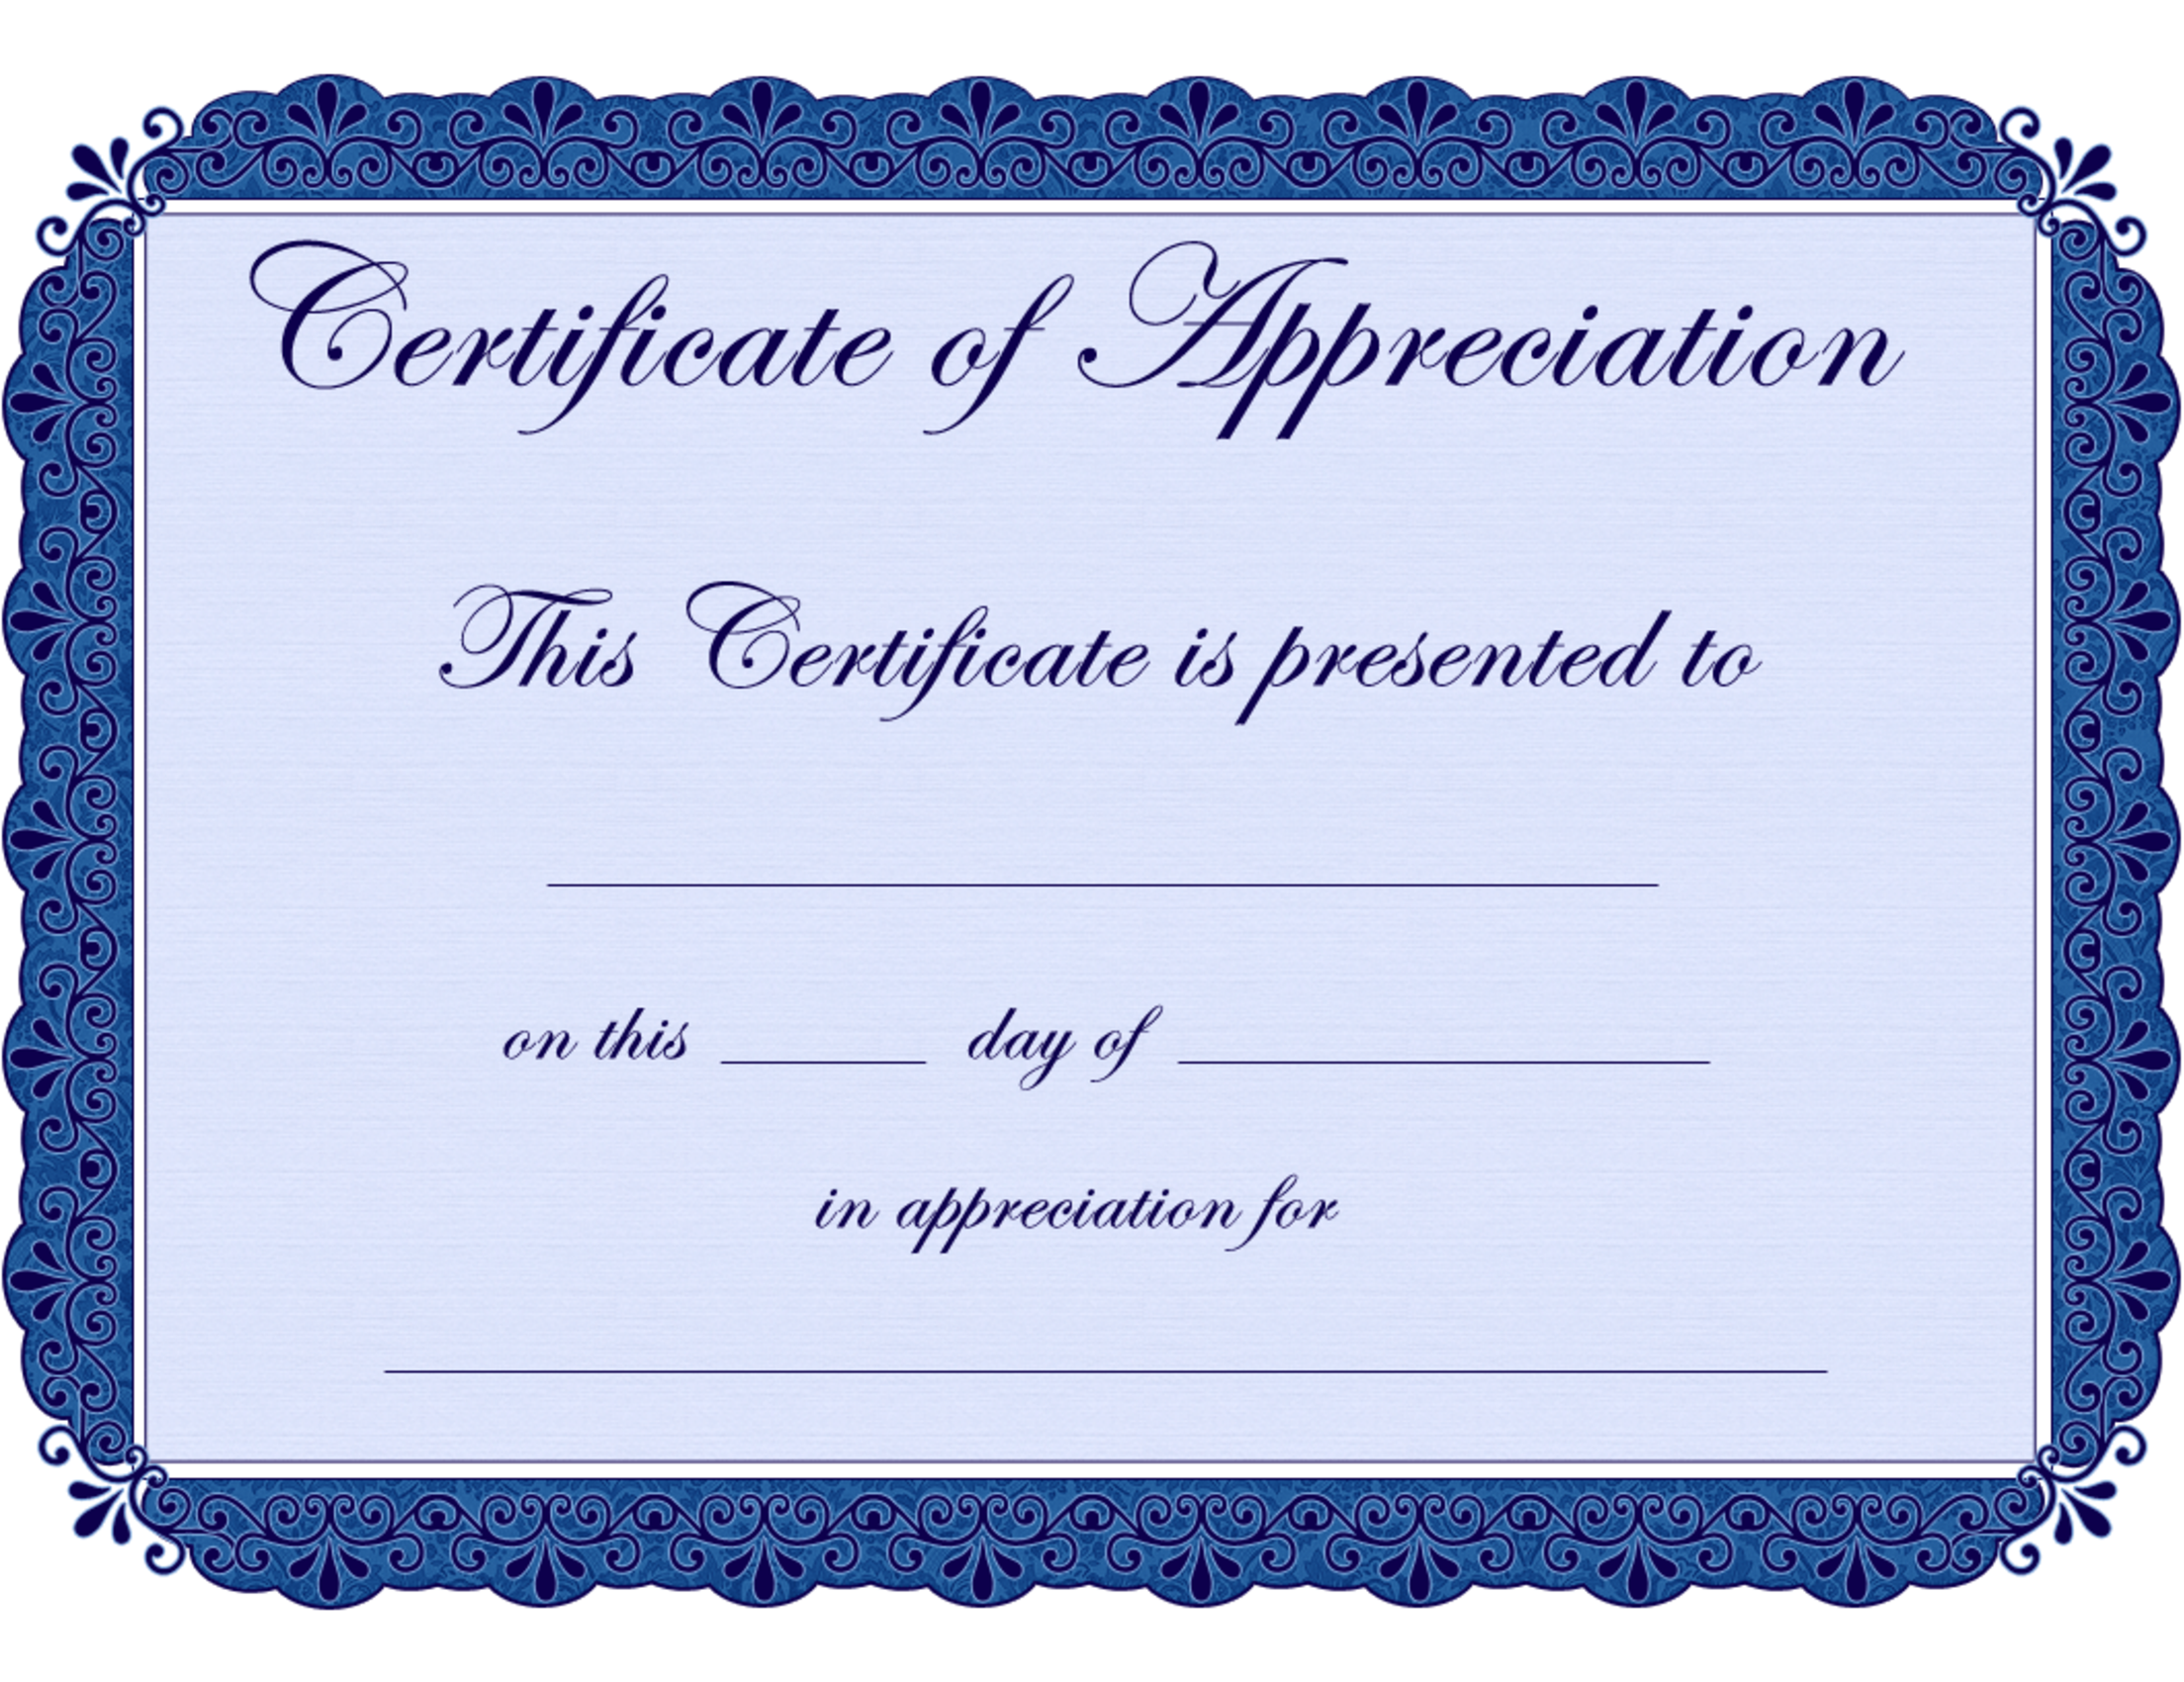 Free printable certificates certificate of appreciation free printable certificates certificate of appreciation certificate certificate of appreciation pinterest free printable certificates yelopaper Gallery